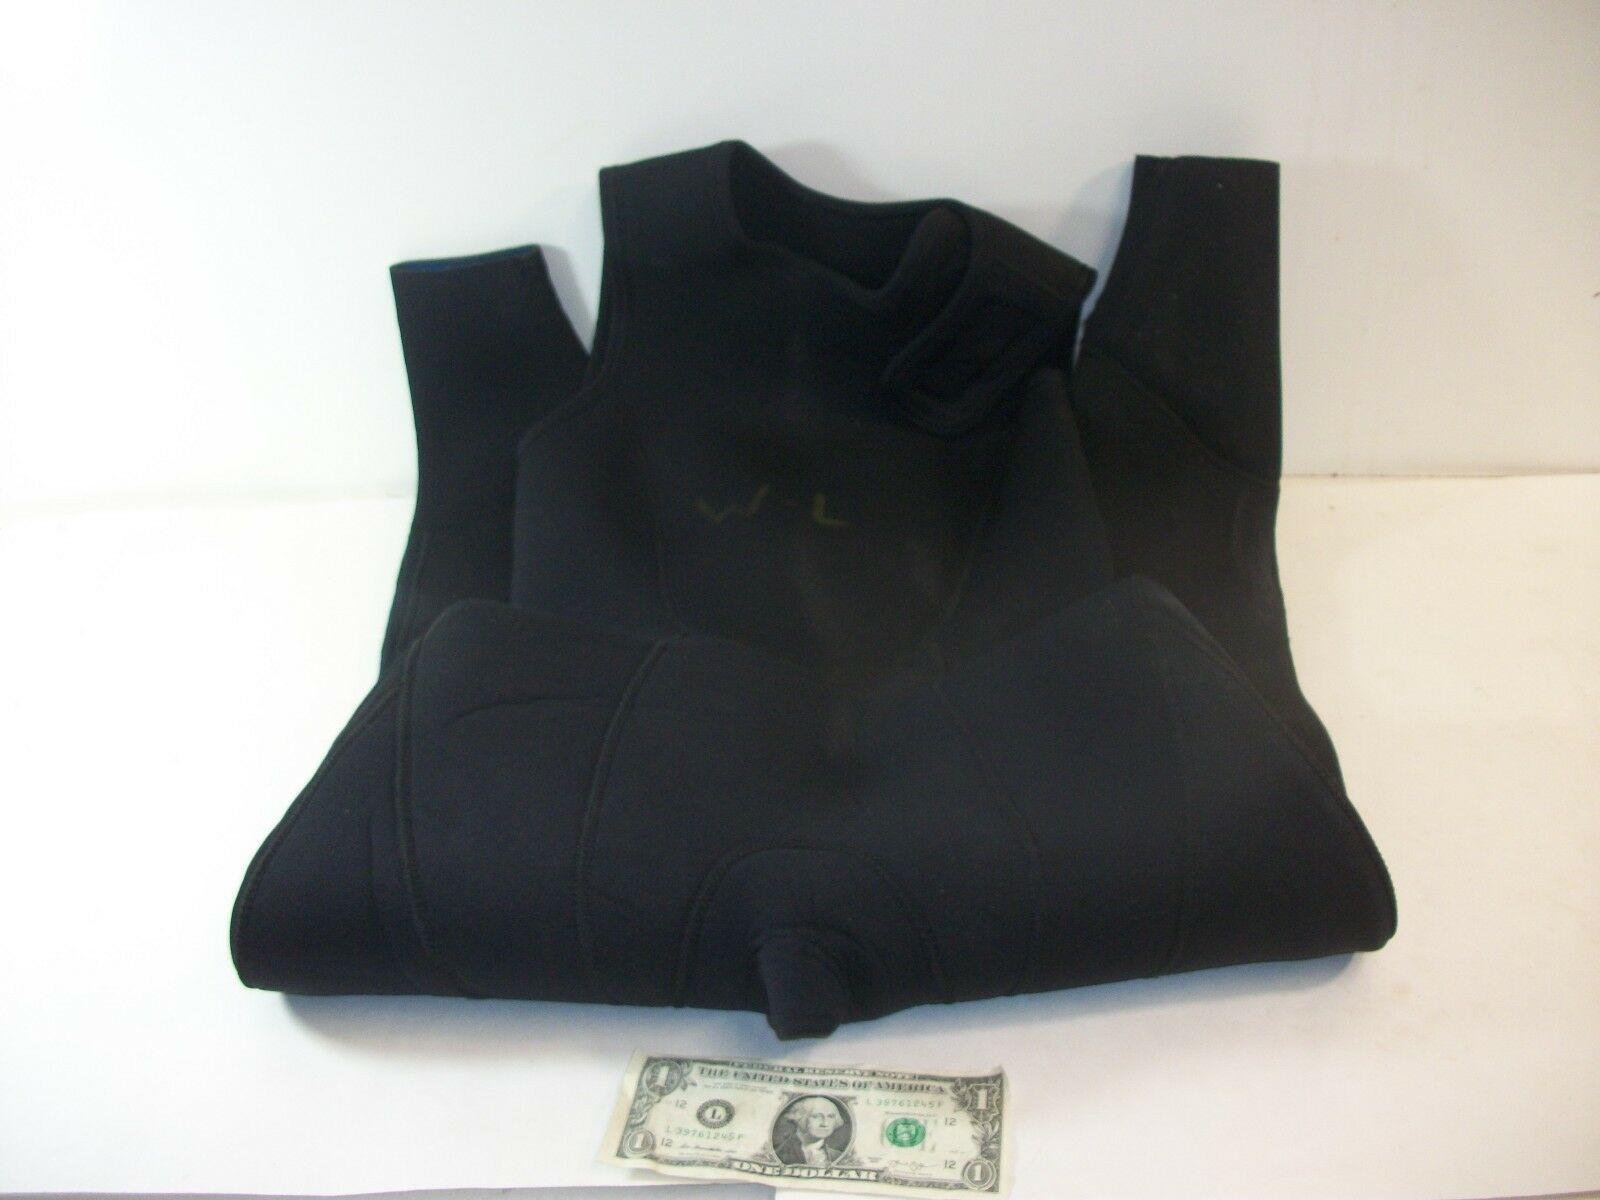 Akona Adventure Gear  Wetsuit Size 11 12  the most fashionable